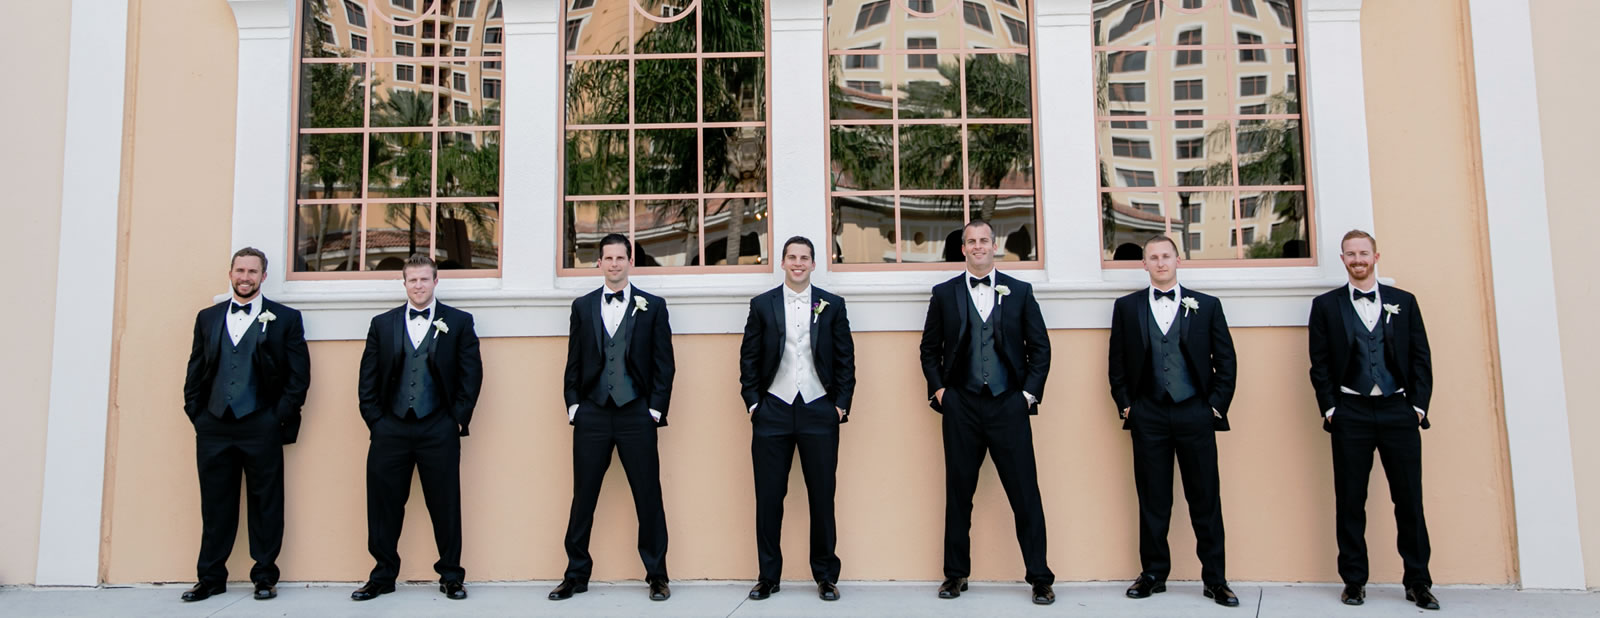 Grooms standing in line outside Rosen Shingle Creek